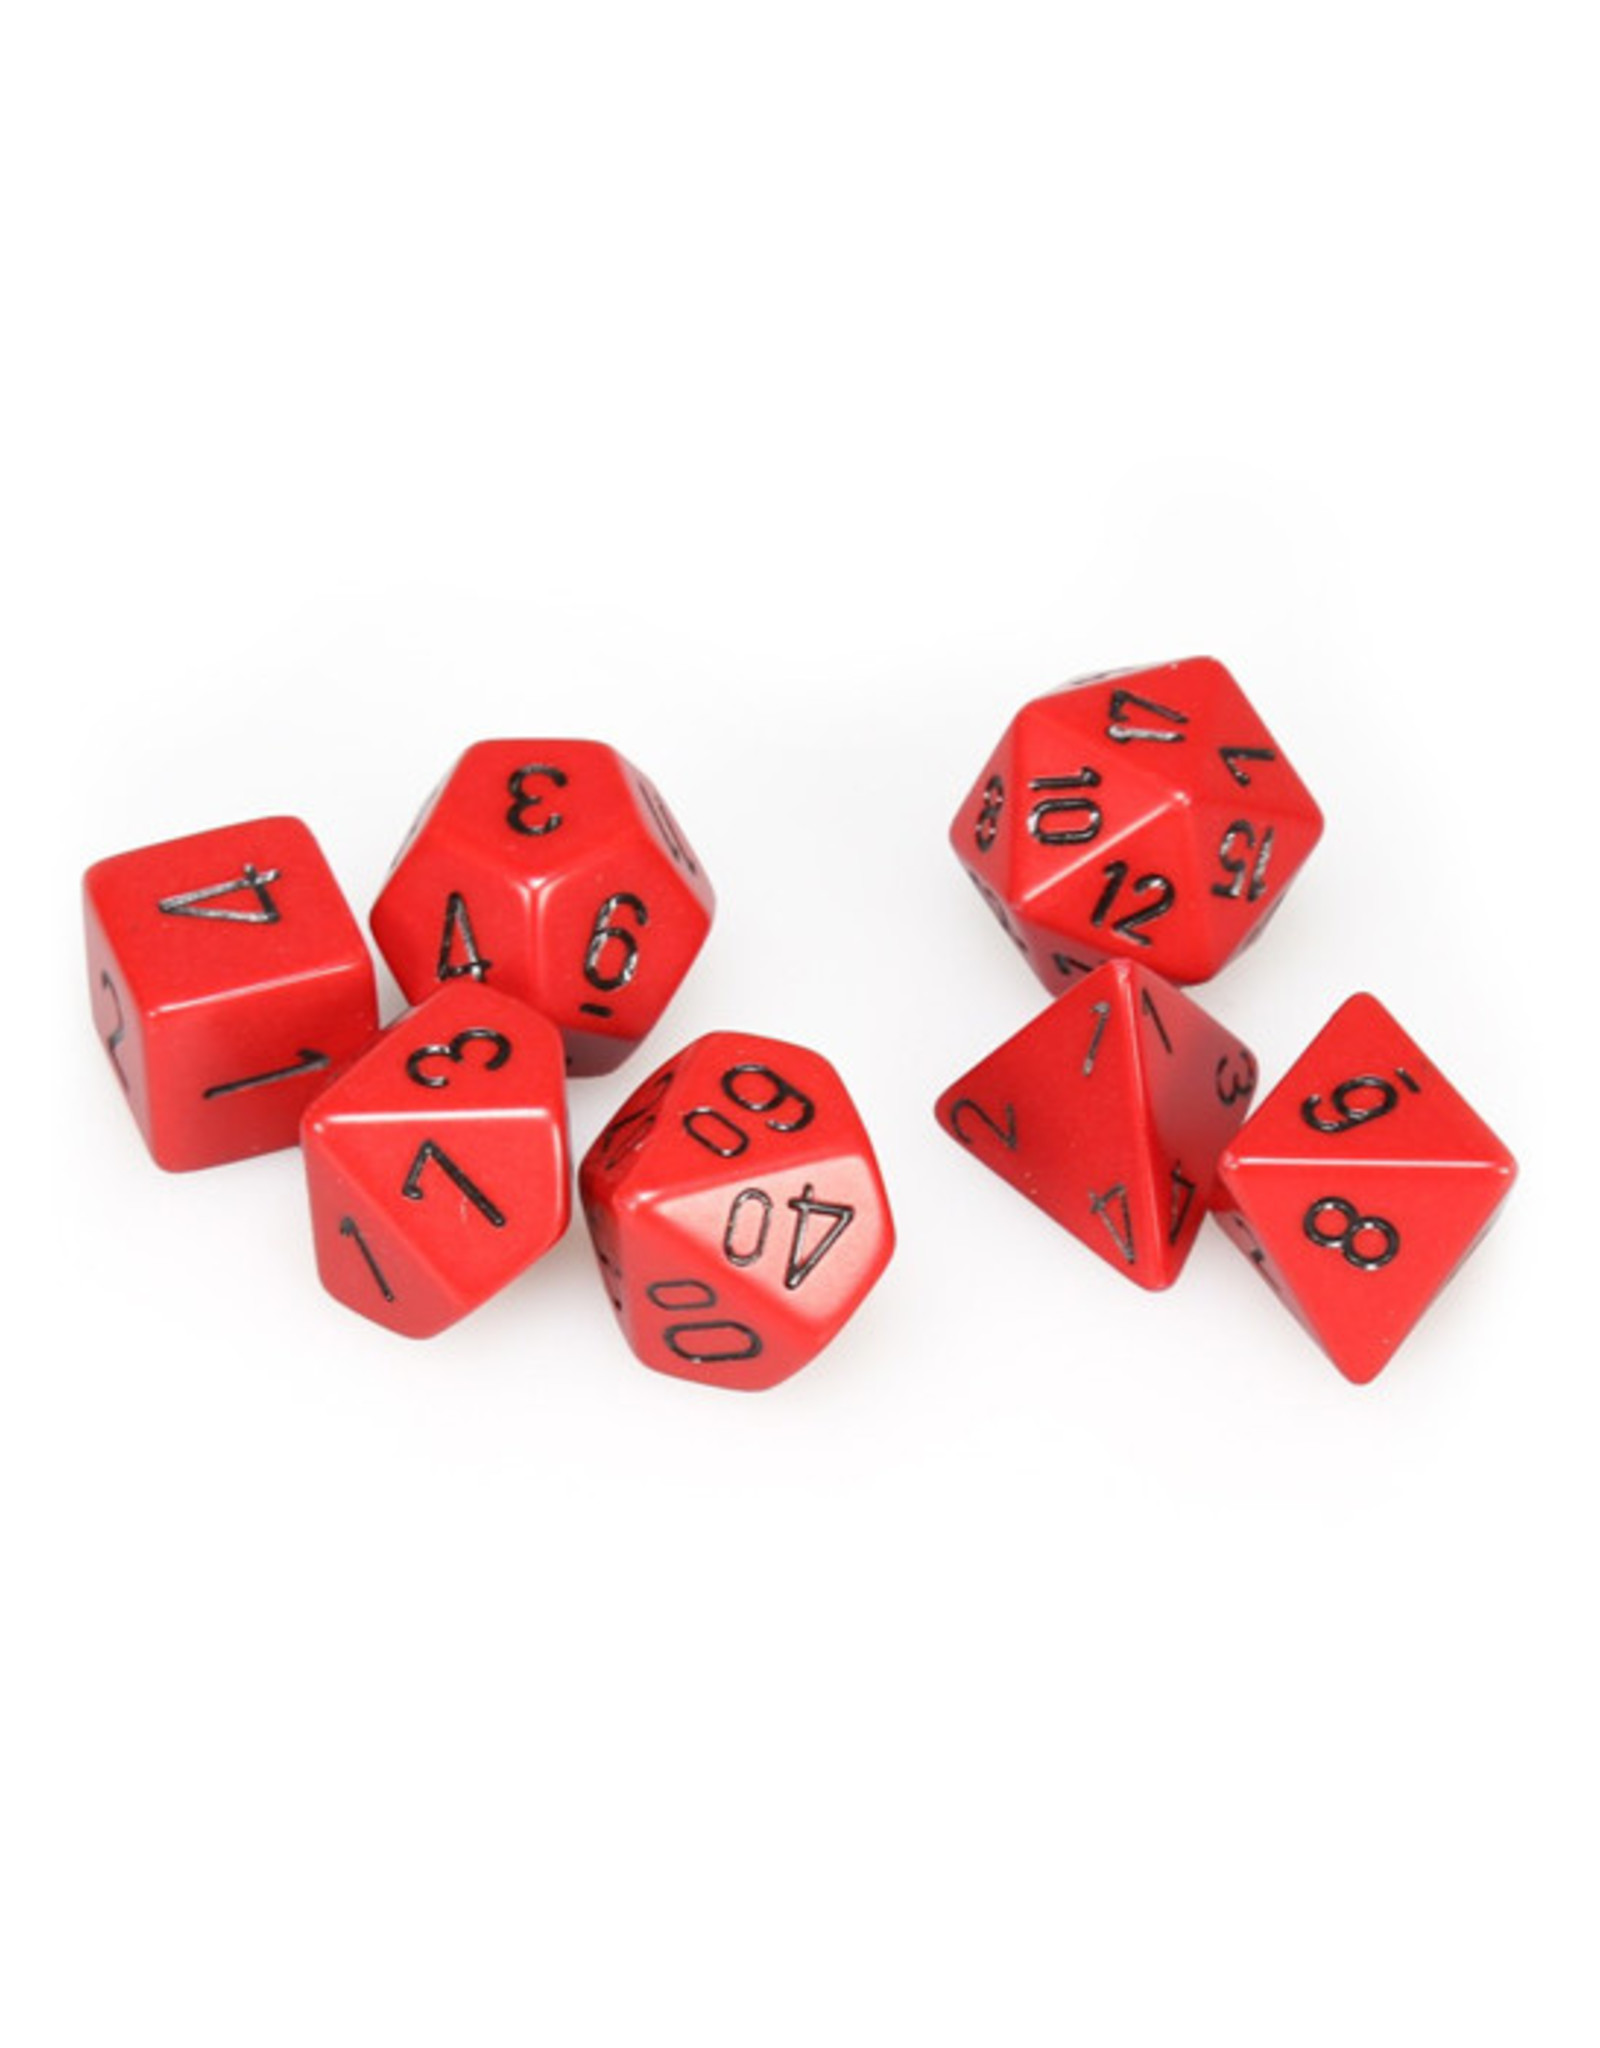 Chessex Chessex: Poly 7 Set - Opaque - Red w/ Black